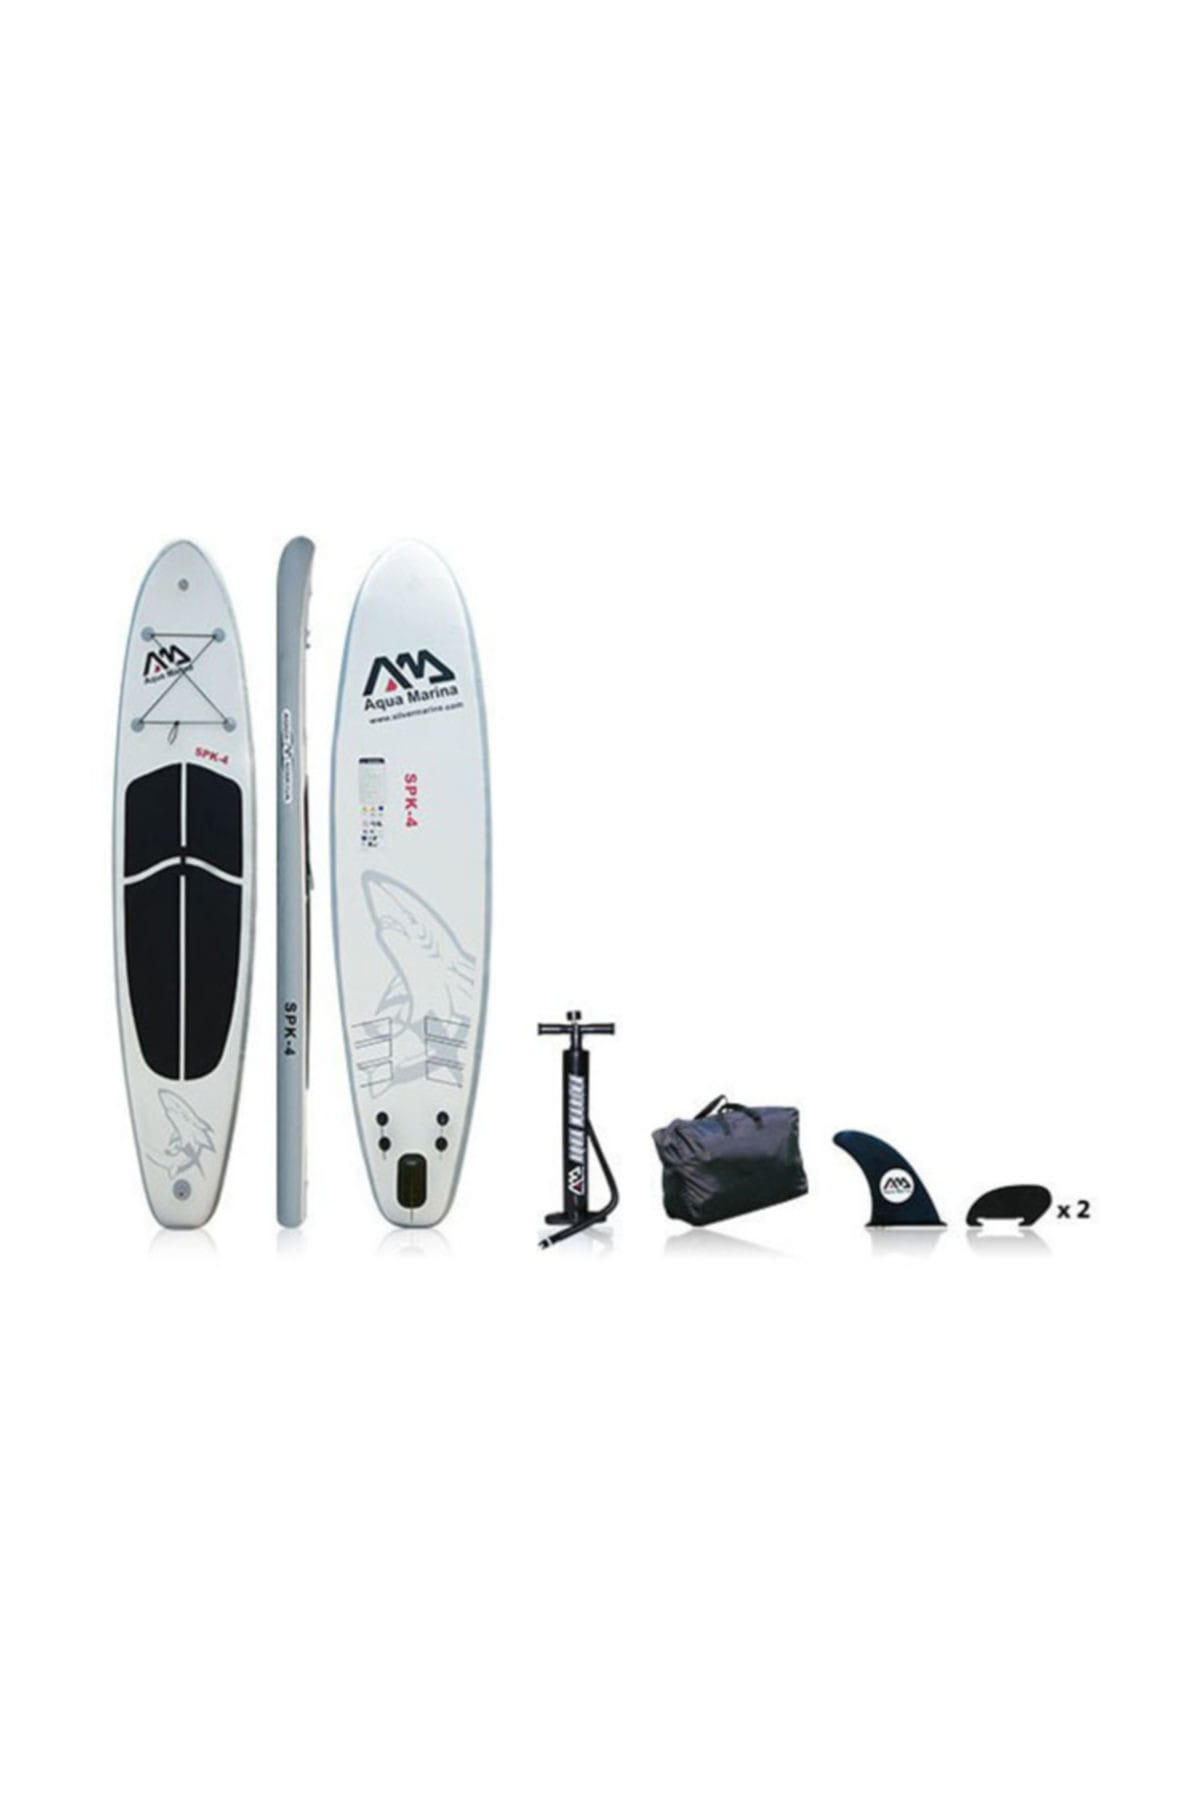 Aqua Marina Spk 4 Stand up Paddle